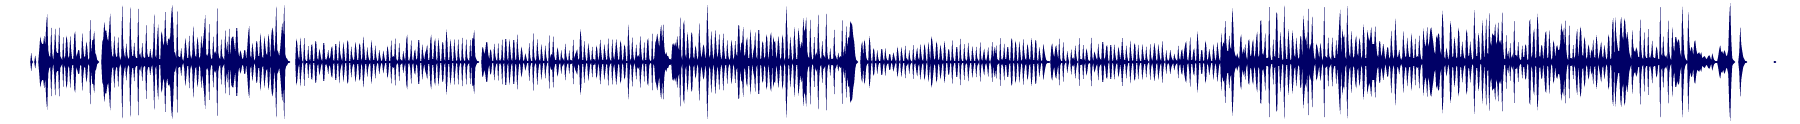 waveform of track #71799